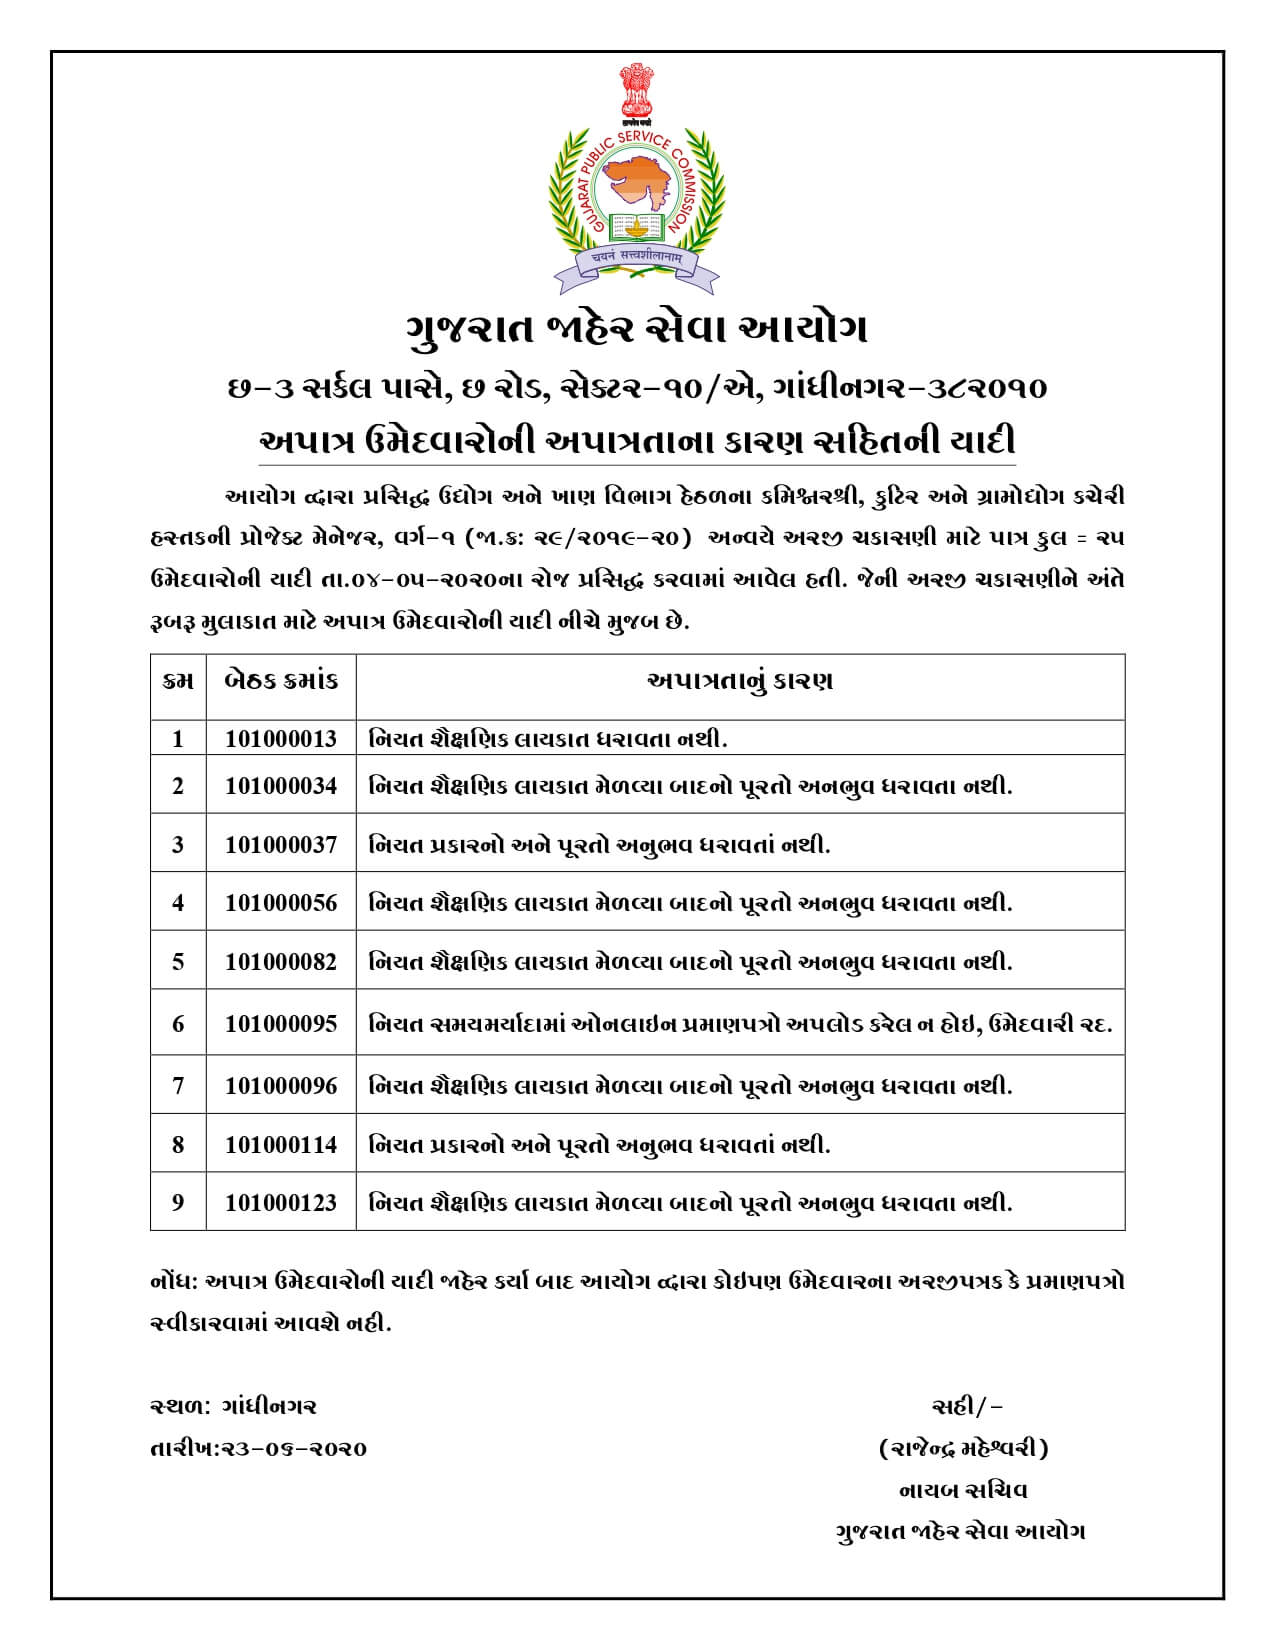 List of Ineligible Candidates for GPSC Project Manager Recruitment (Advt. No. 29201920)(1)